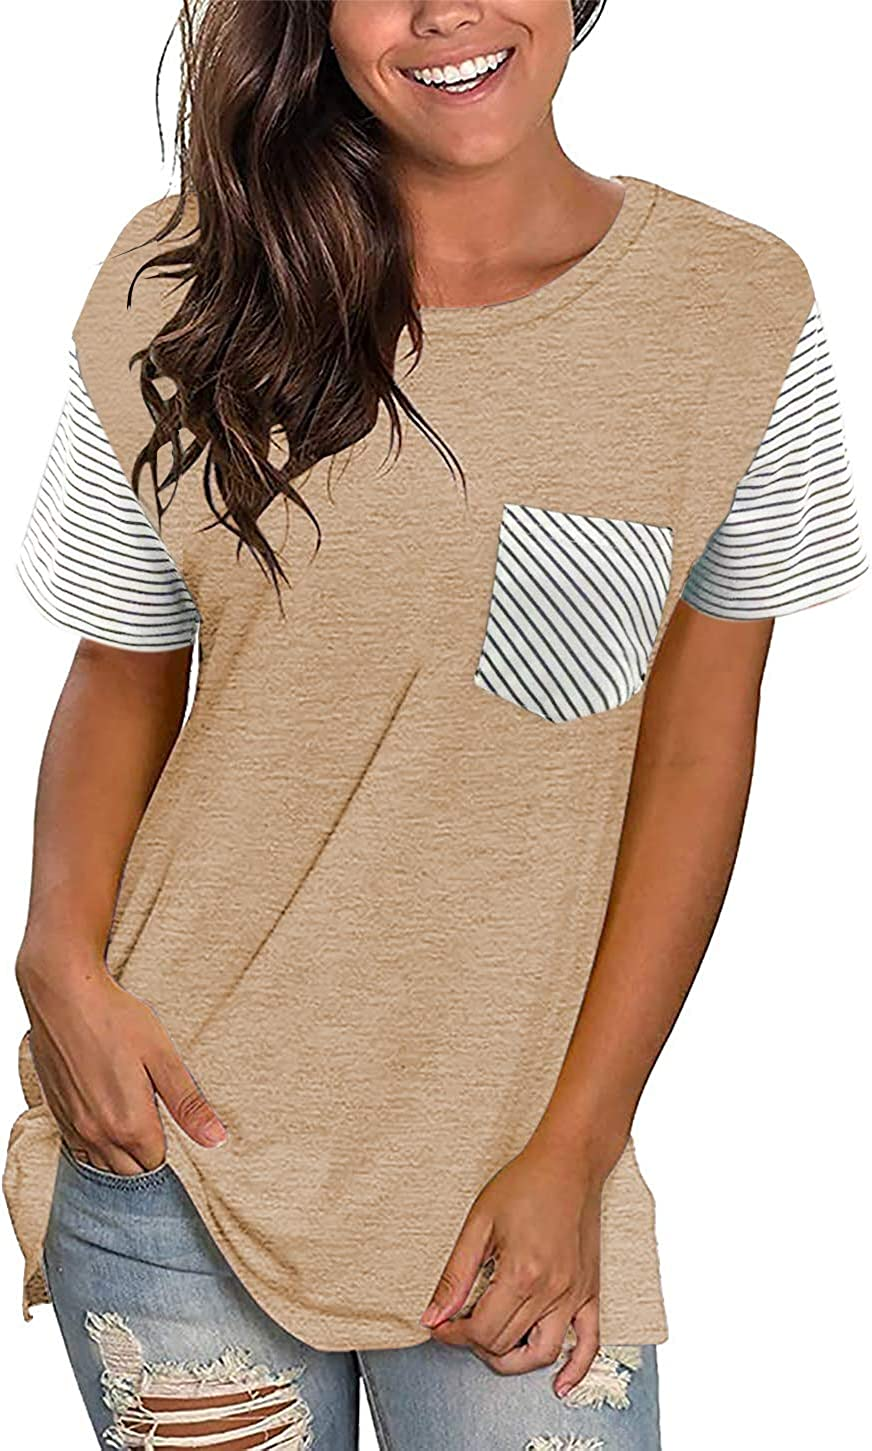 Women Striped Patchwork T-Shirt Casual Short Sleeve Round Neck Loose Fit Tops